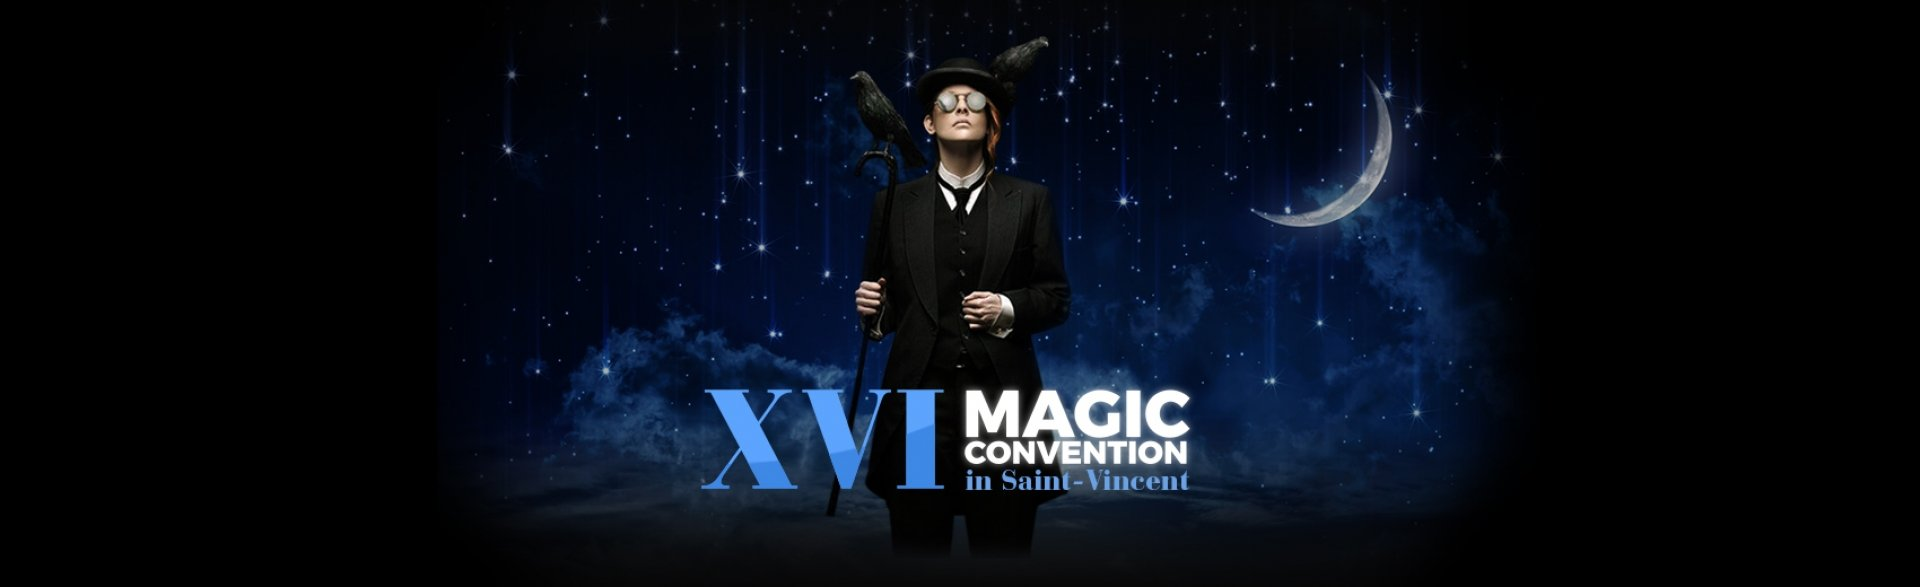 XVI Magic Convention